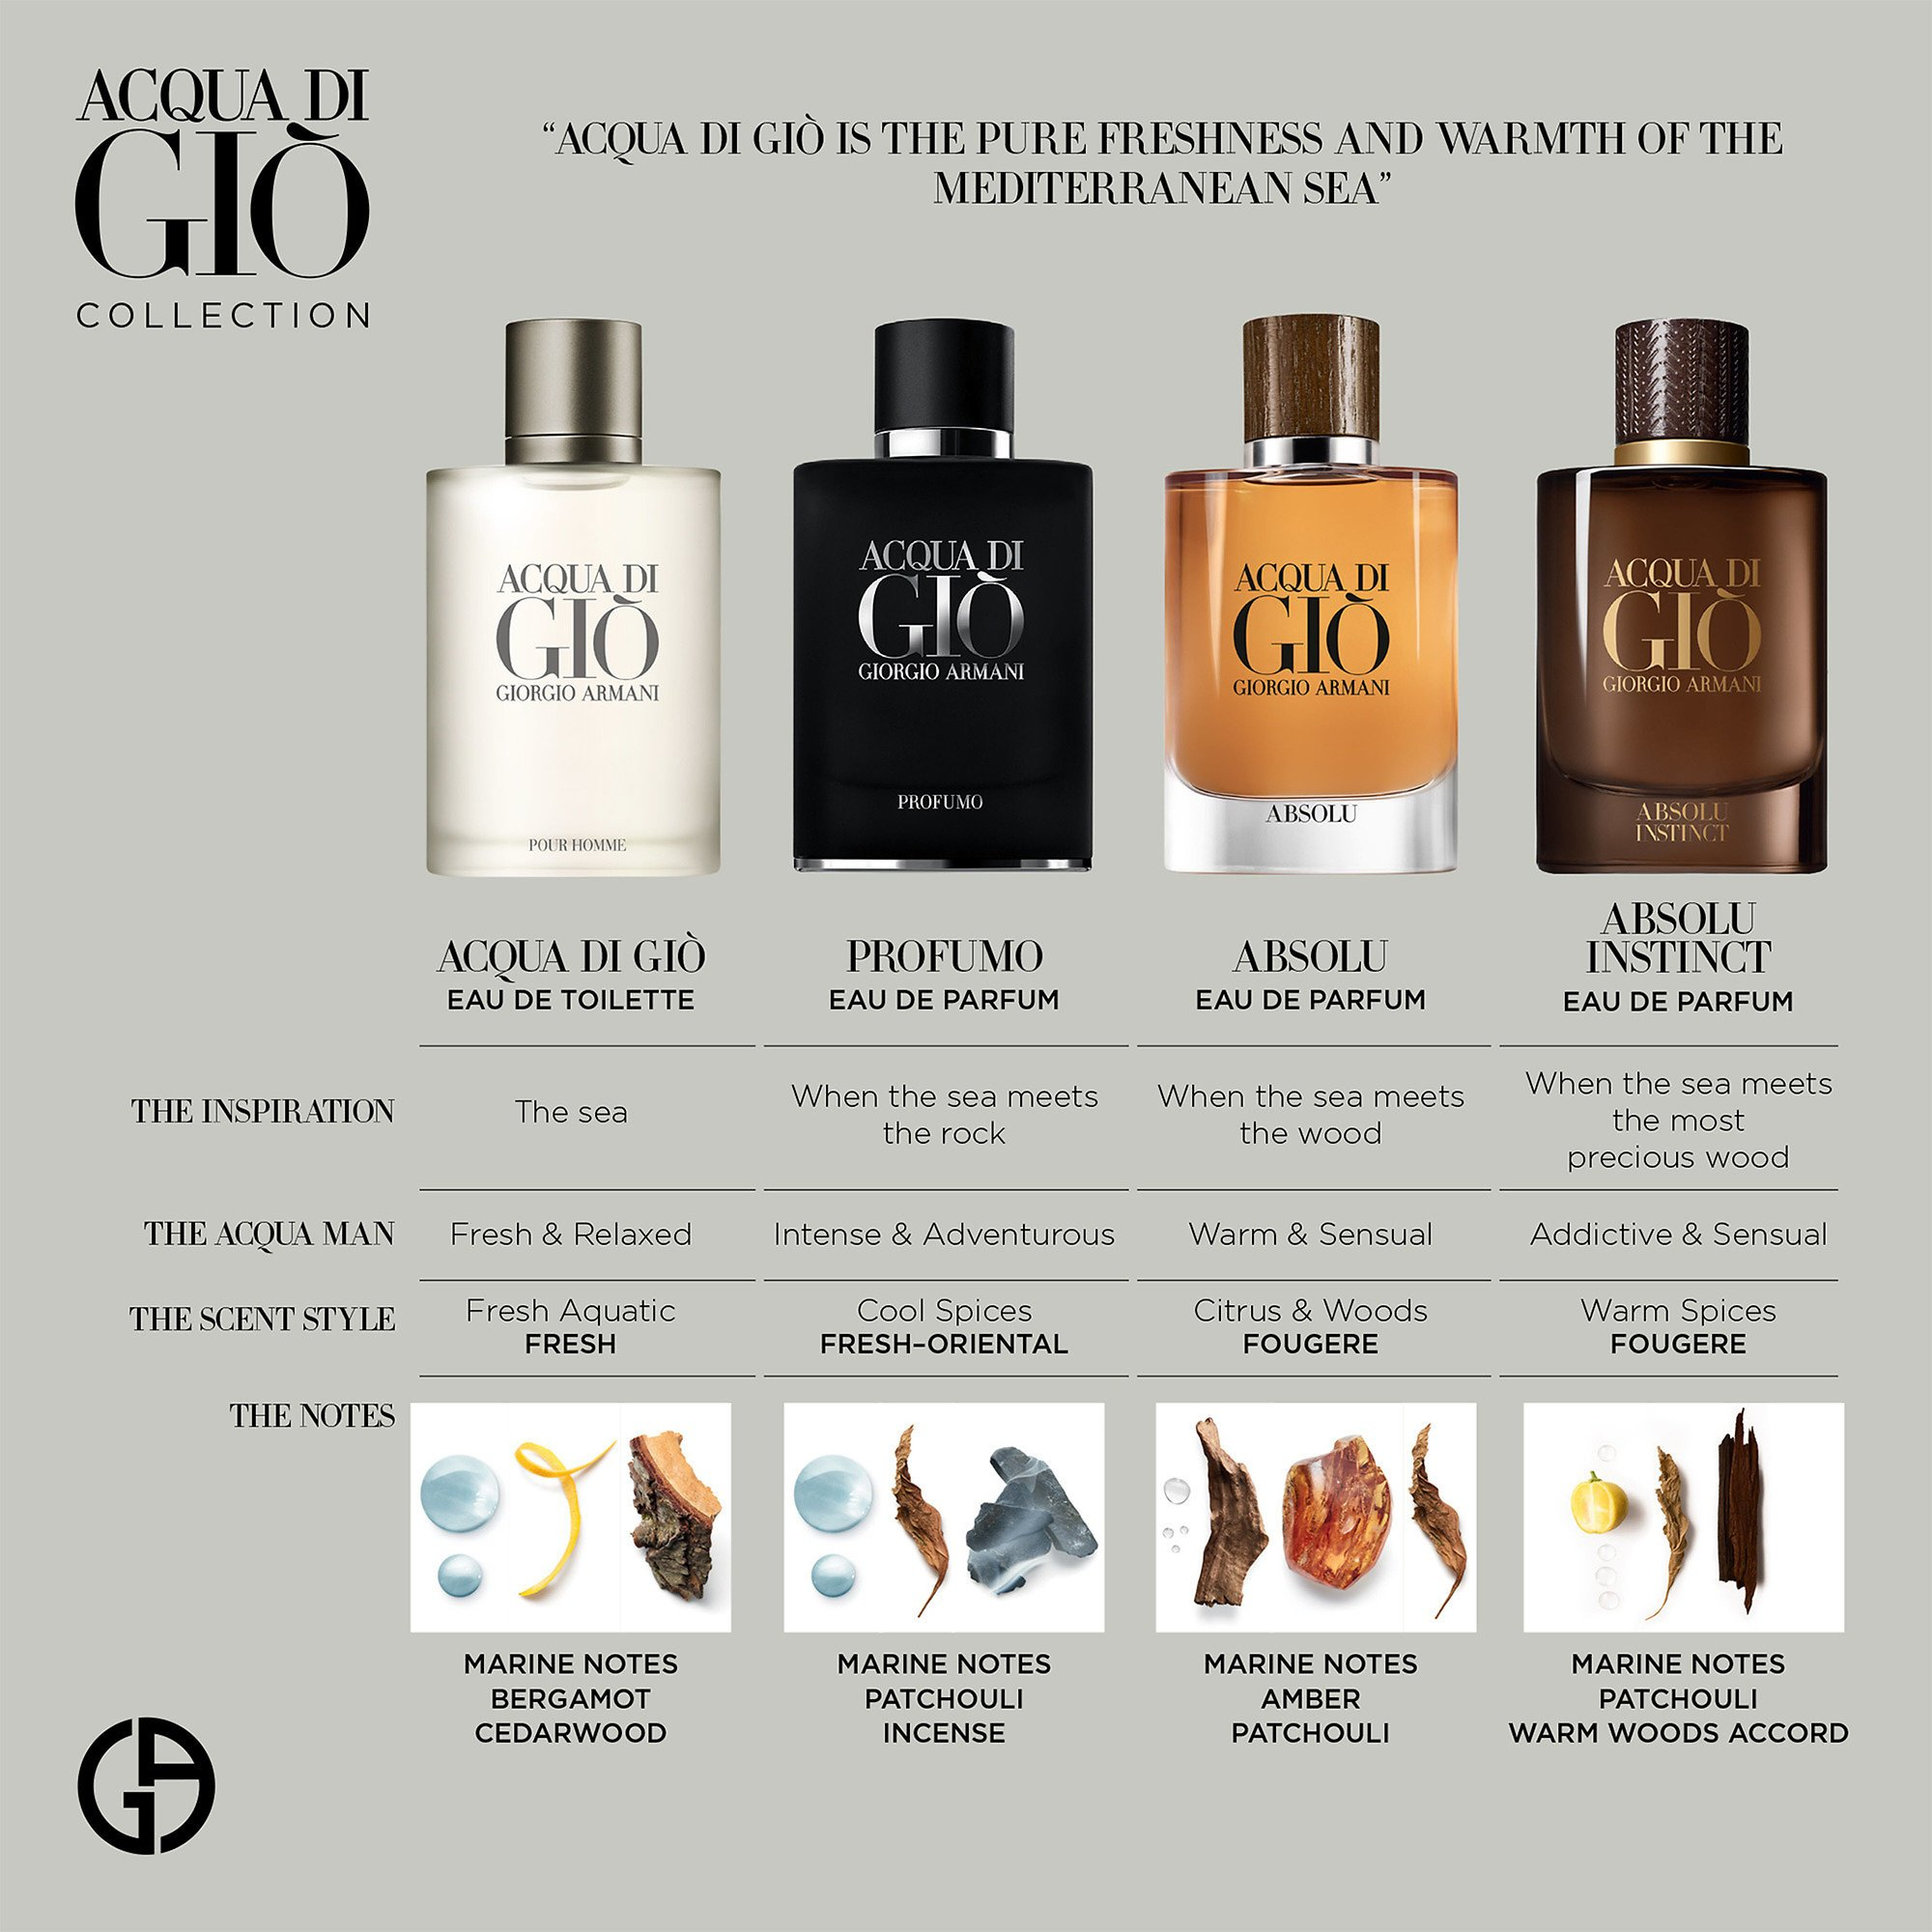 Armani perfume: Flavours of Acqua di Gio for men